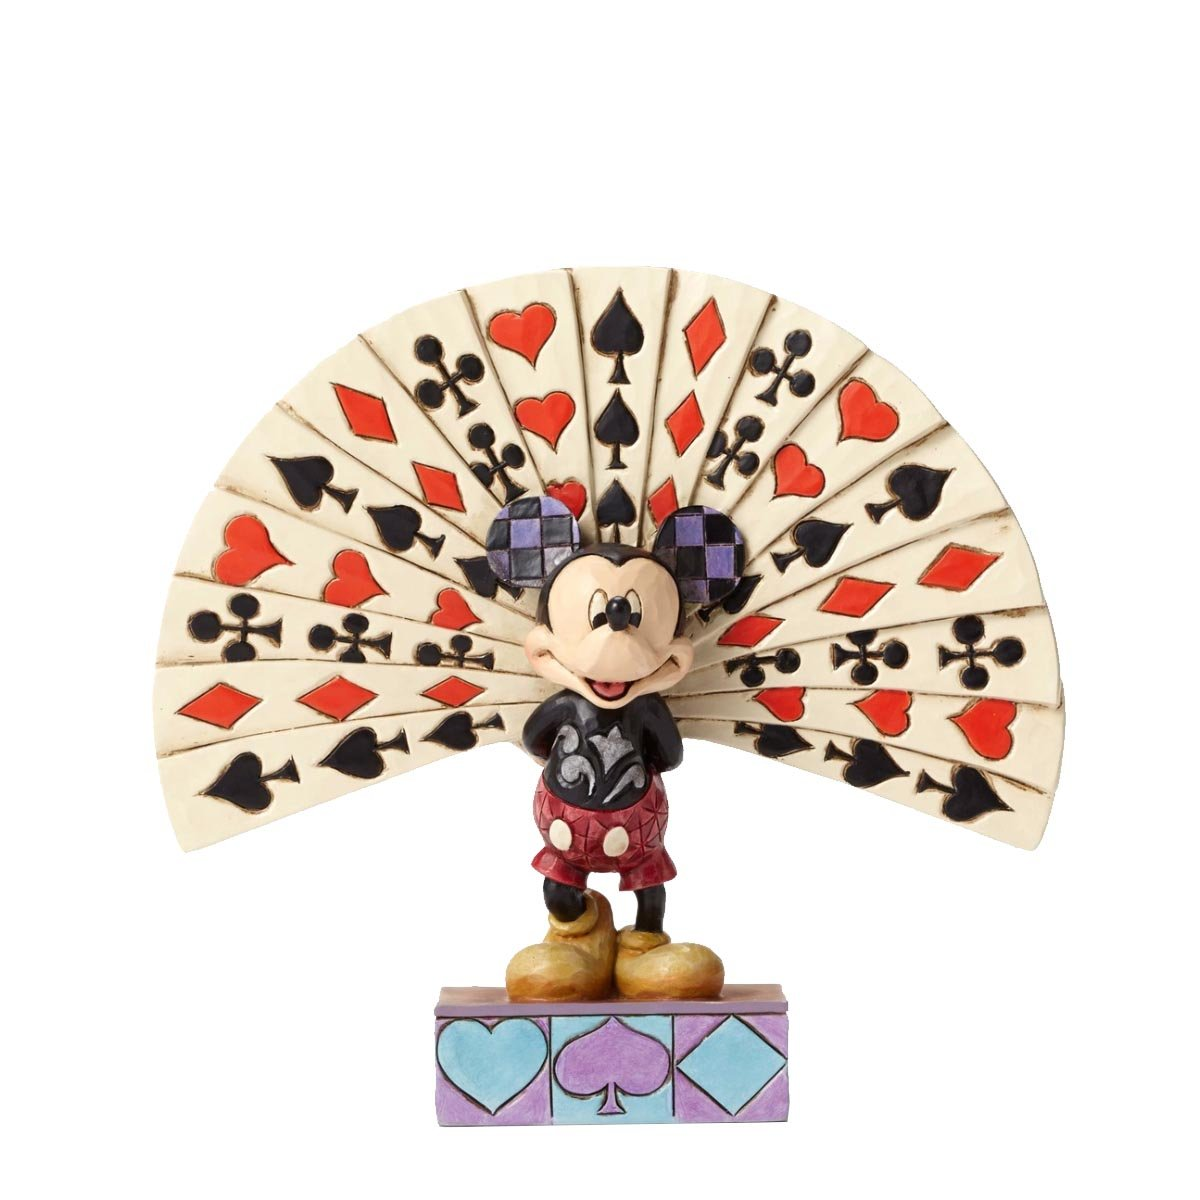 Disney Tradition All Decked Out (Mickey Mouse Figur) Figur) Figur) 6bf470